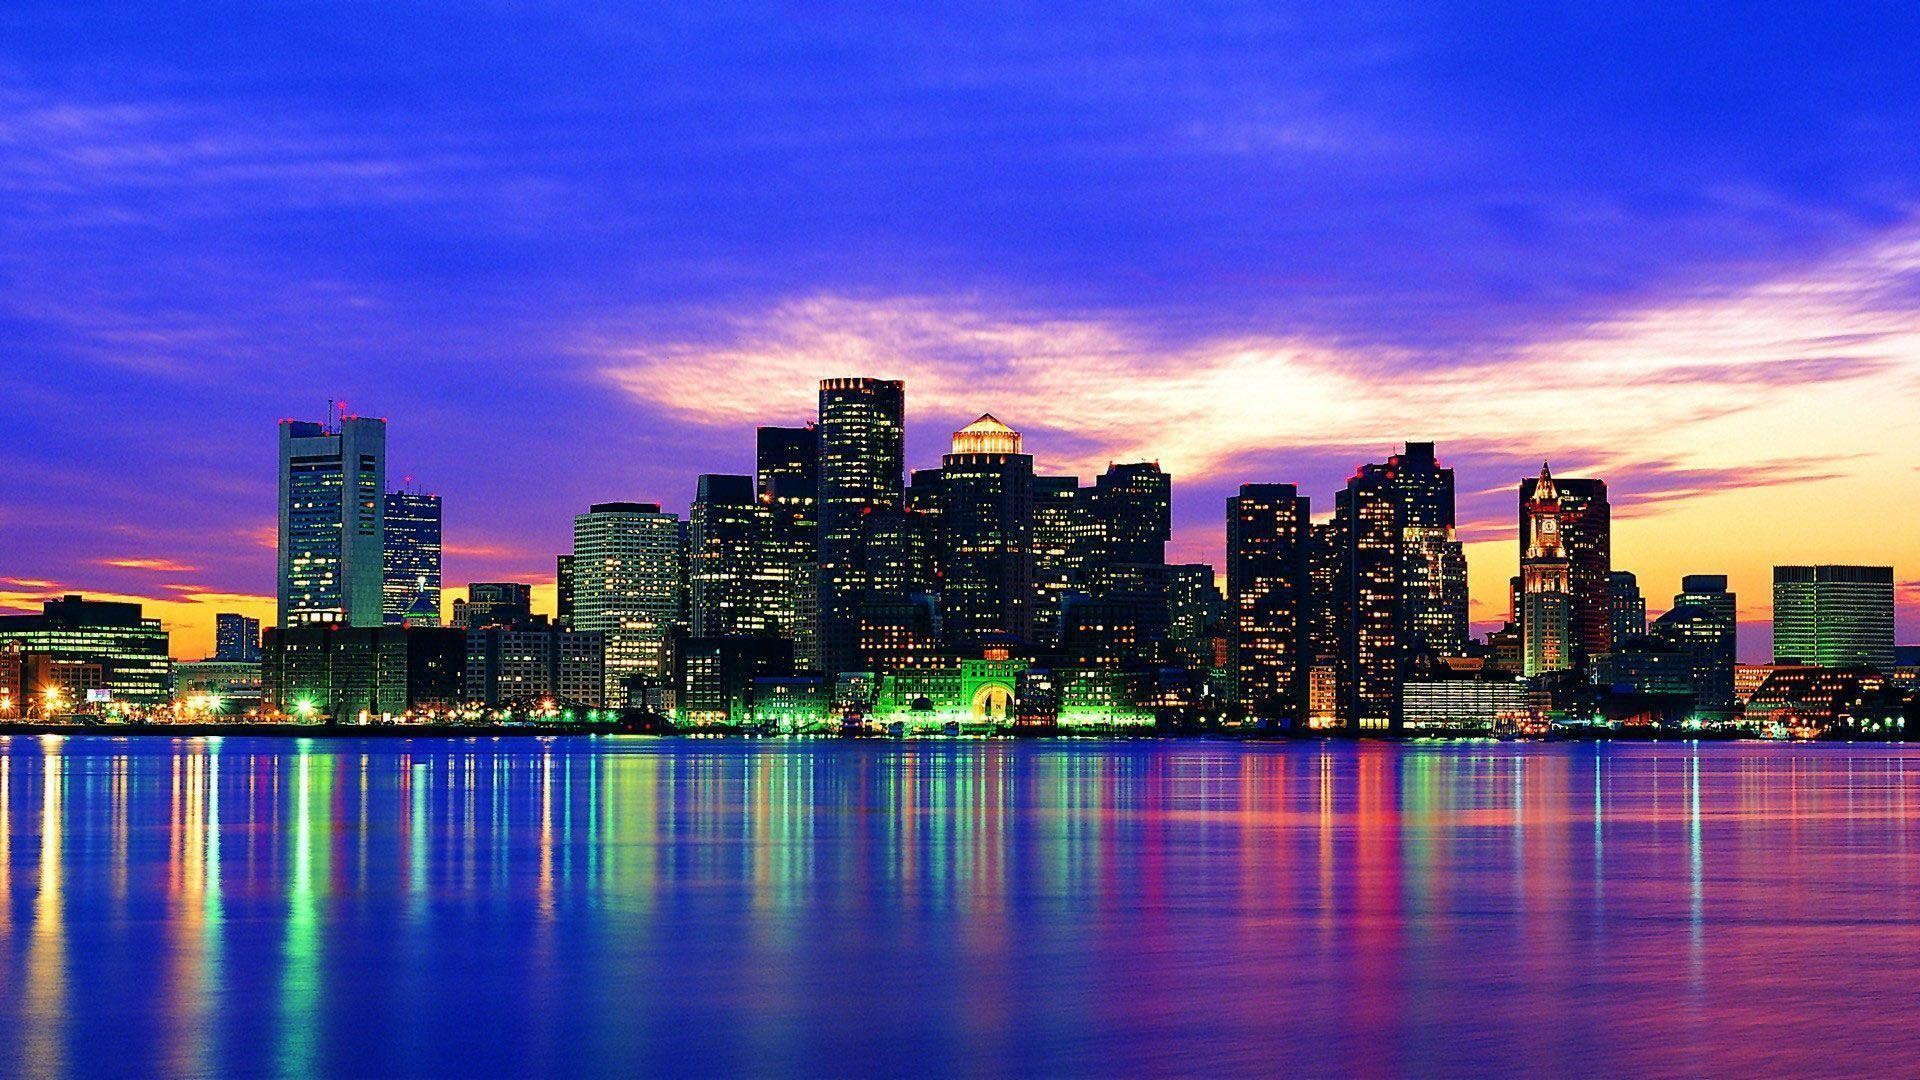 New York City Skyline at Night Wallpaper Wide or HD | Photography .